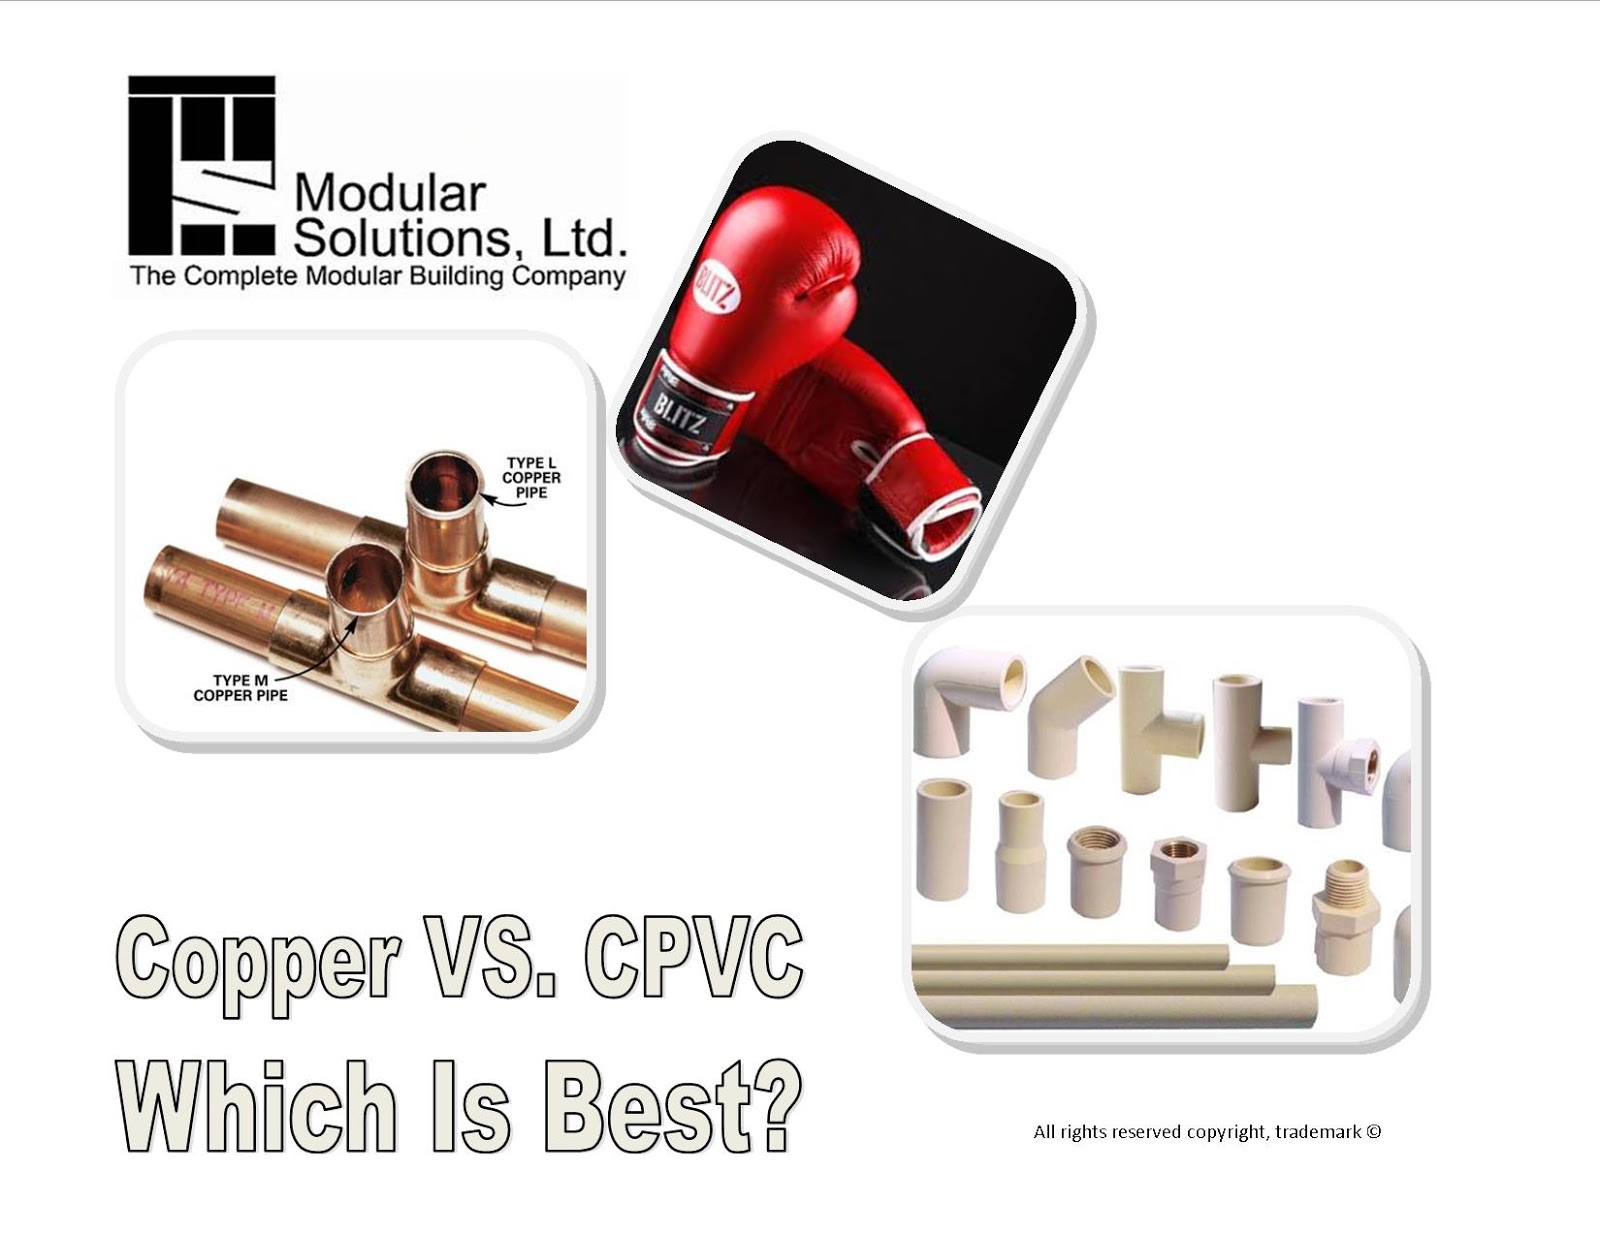 Modular solutions ltd the experts on prefabricated for Cpvc vs copper